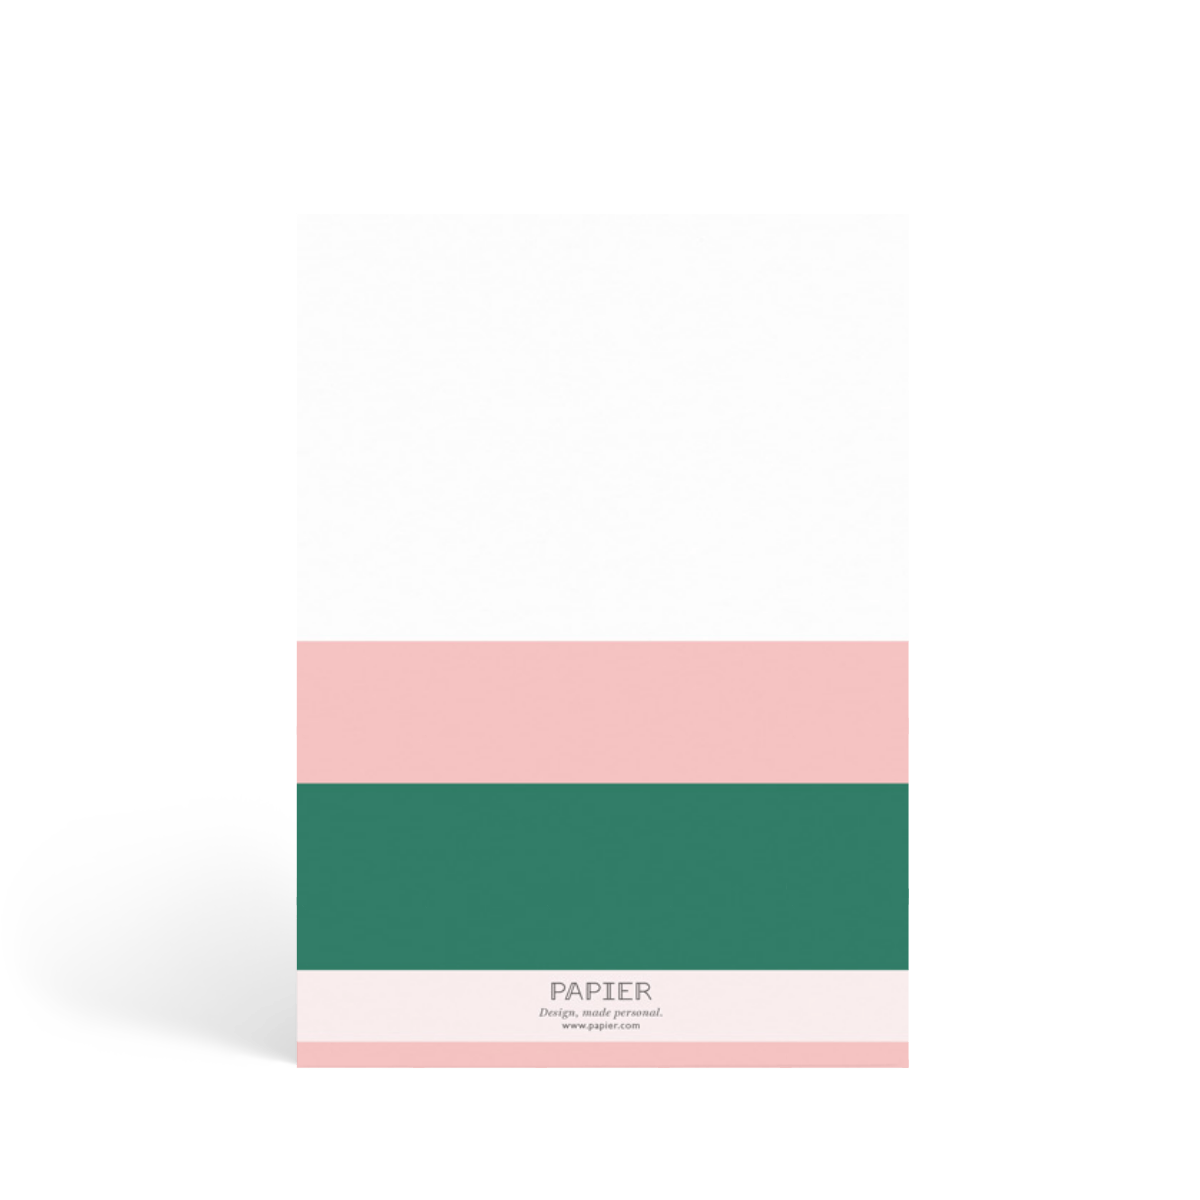 Https%3a%2f%2fwww.papier.com%2fproduct image%2f57473%2f5%2fstriped colourblock 13801 back 1542370708.png?ixlib=rb 1.1